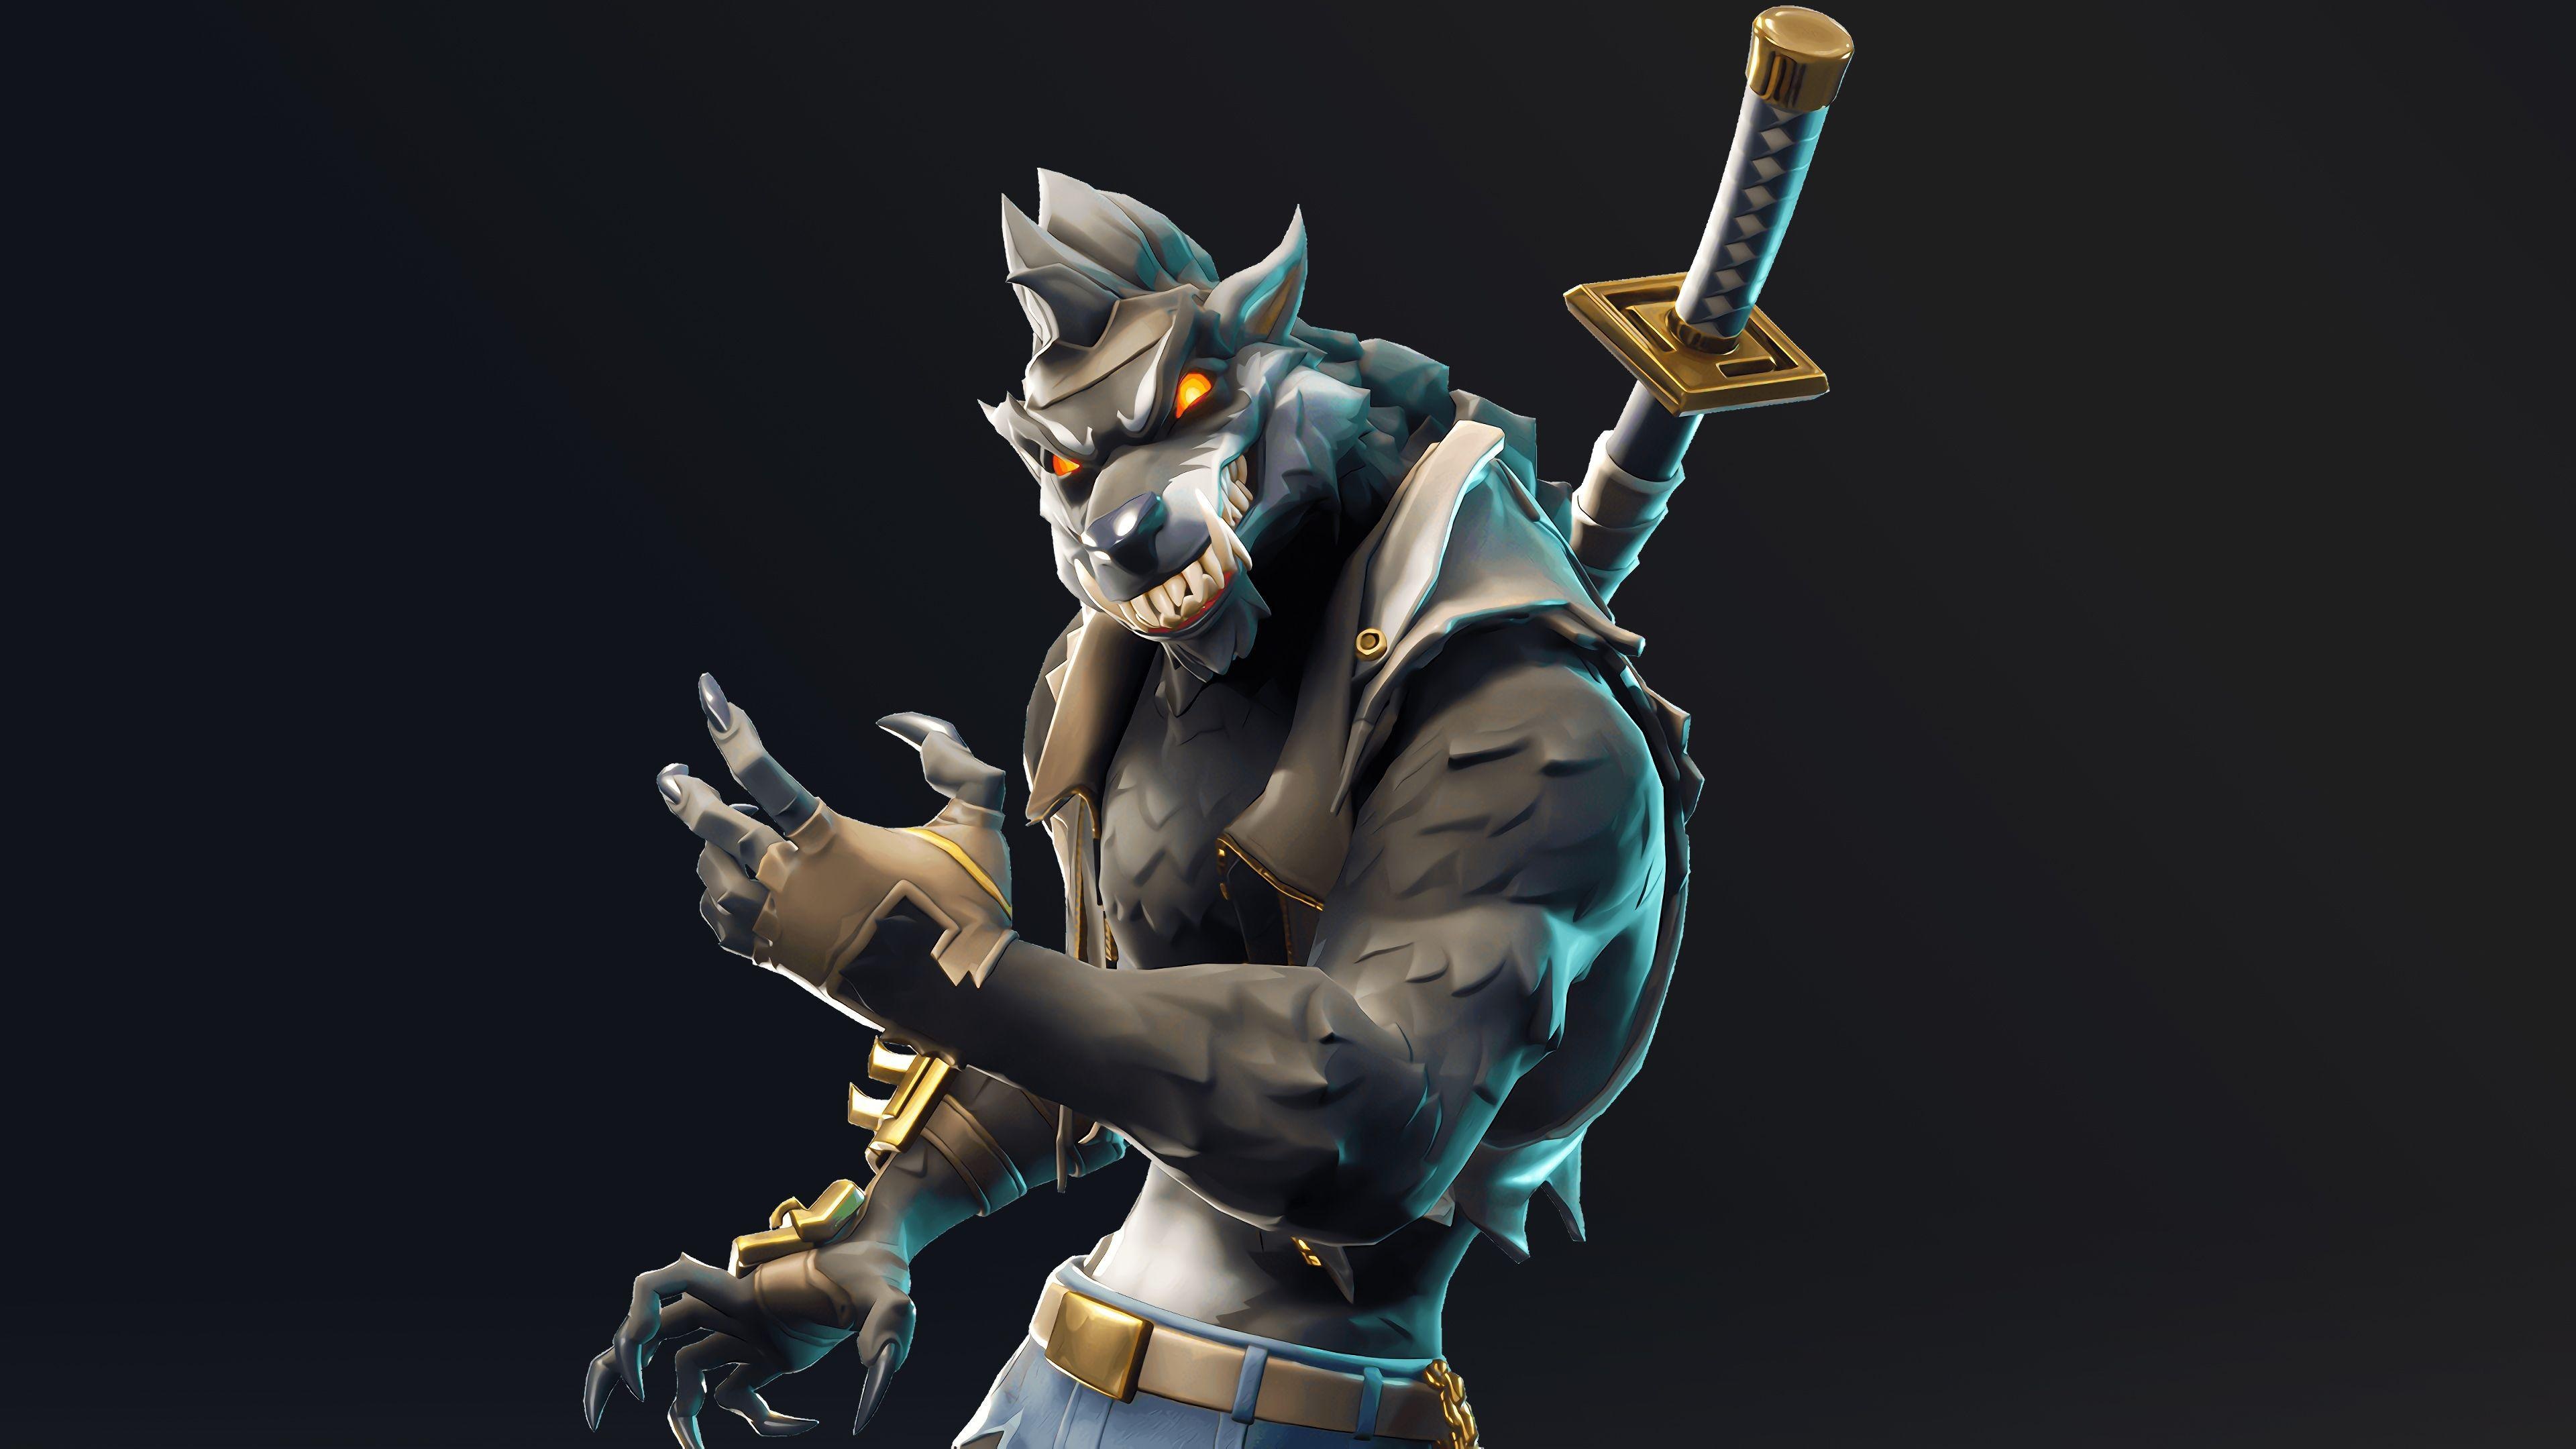 Dire Werewolf Fortnite Battle Royale Season 6 Skin Wallpapers